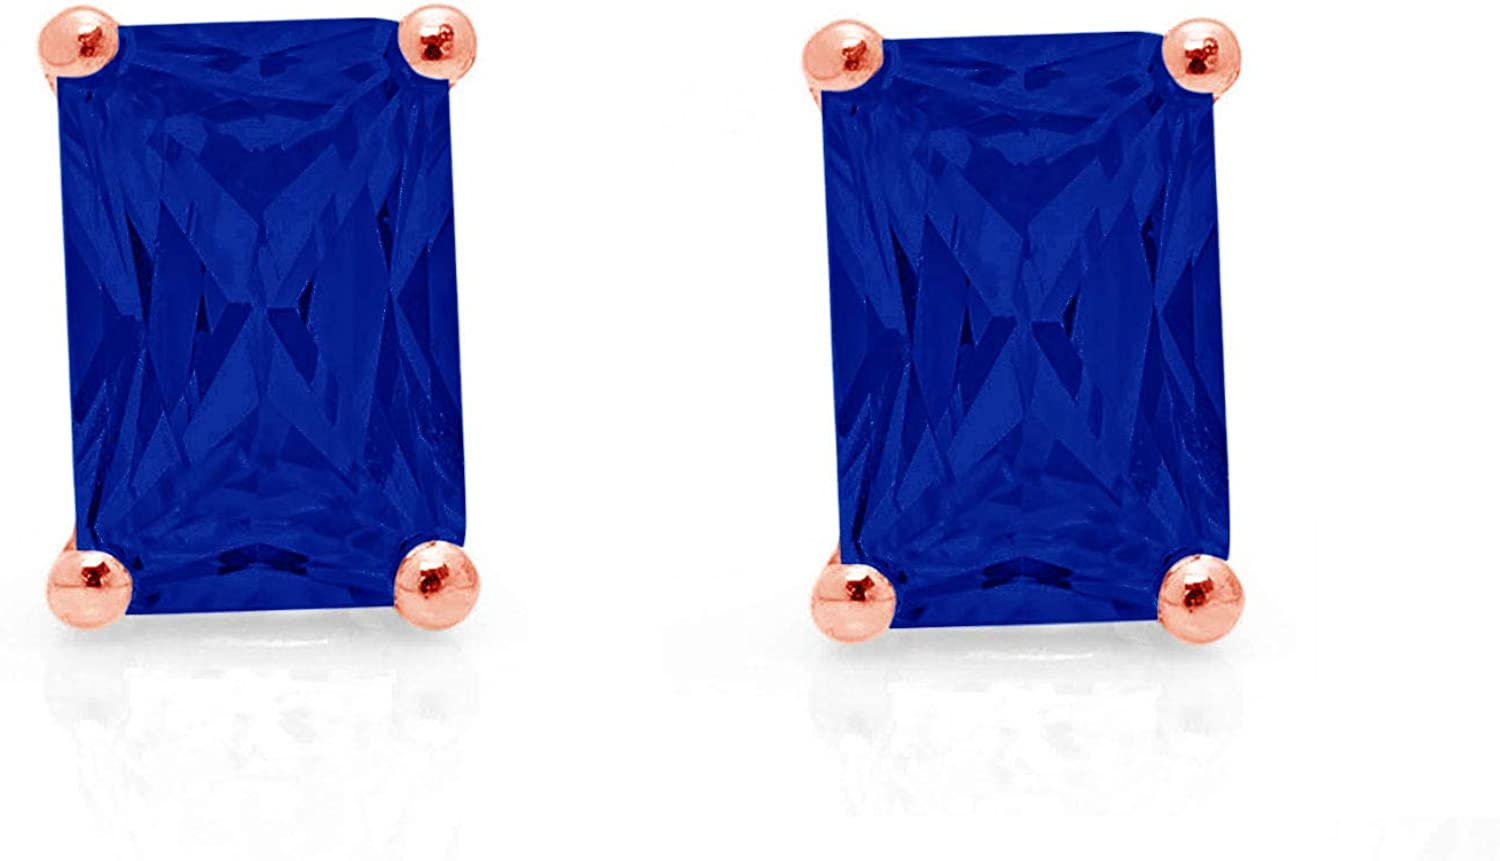 1.0 ct Brilliant Emerald Cut Solitaire VVS1 Fine Simulated Blue Sapphire Gemstone Pair of Stud Earrings Solid 18K Pink Rose Gold Screw Back